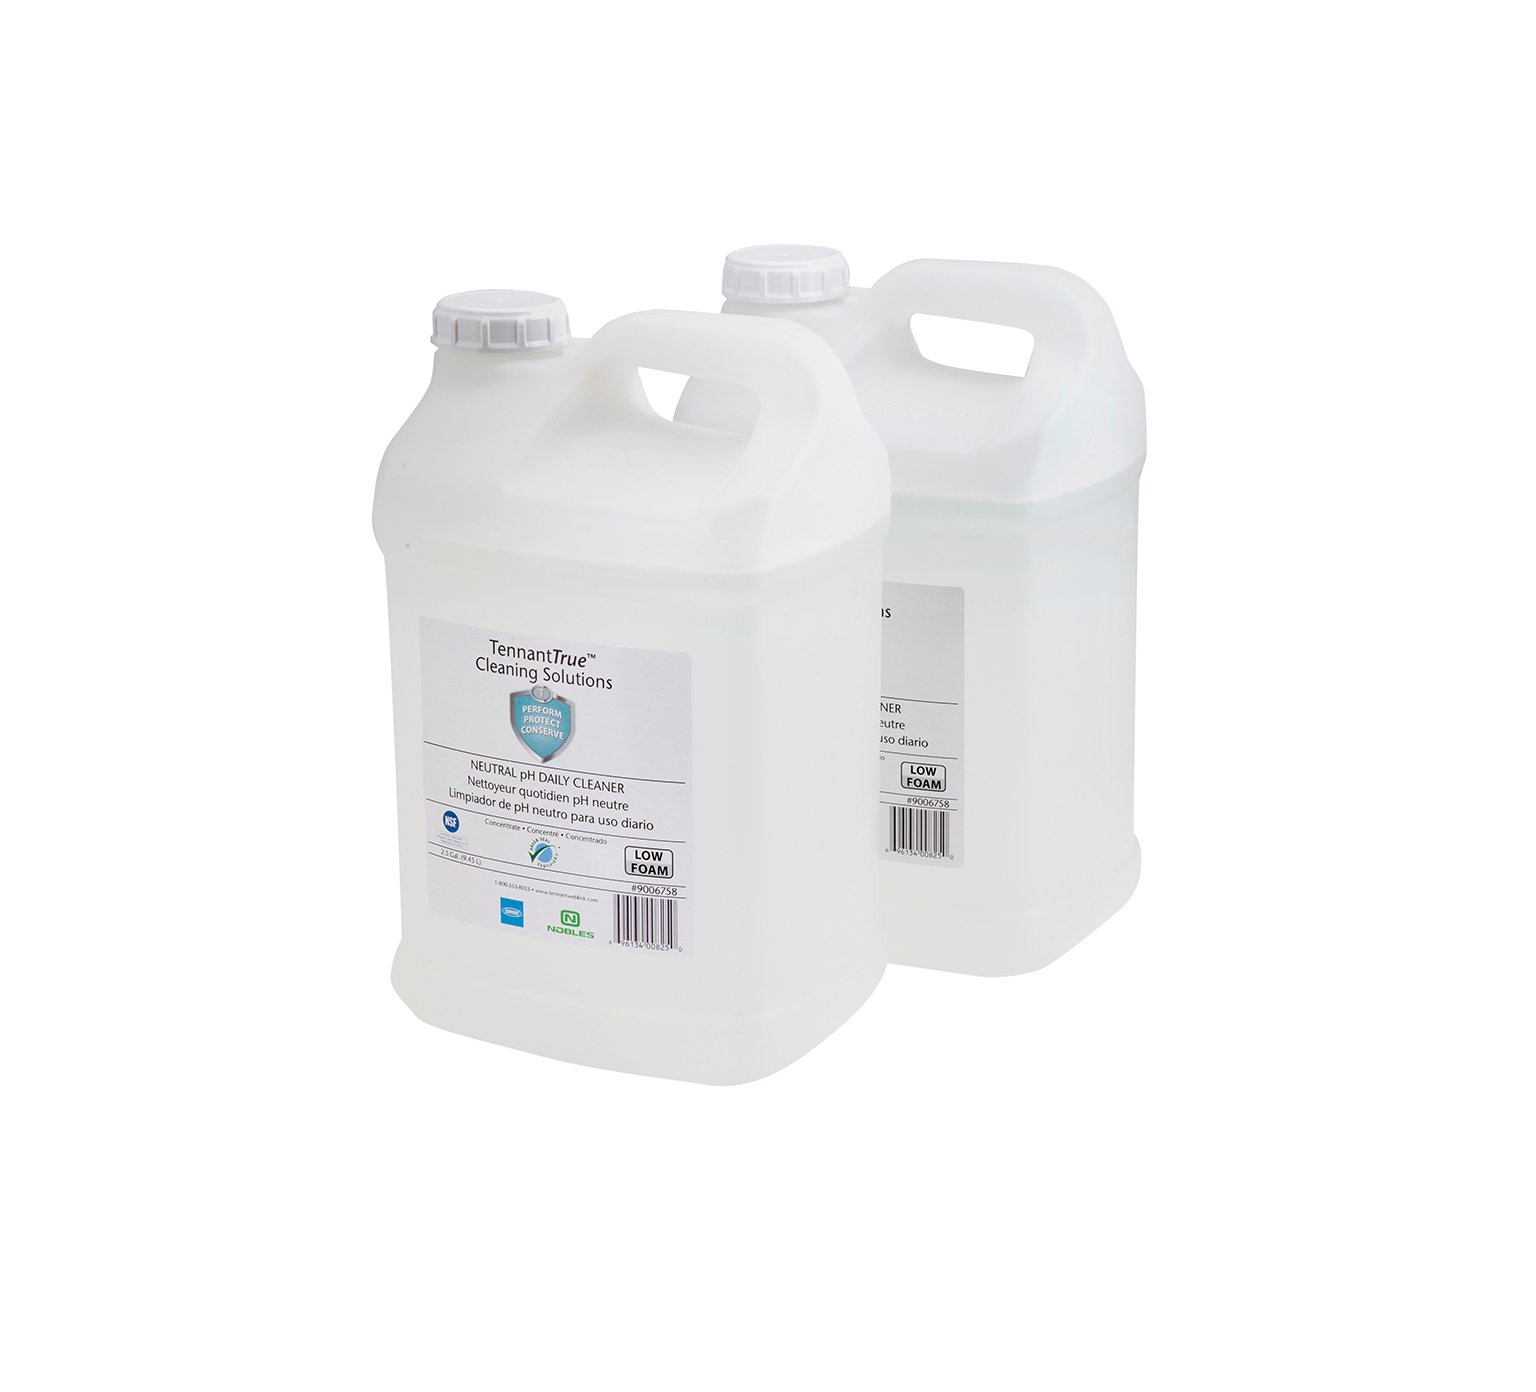 Tennant Clear Neutral pH Daily Cleaner 5 Gallon 9006758